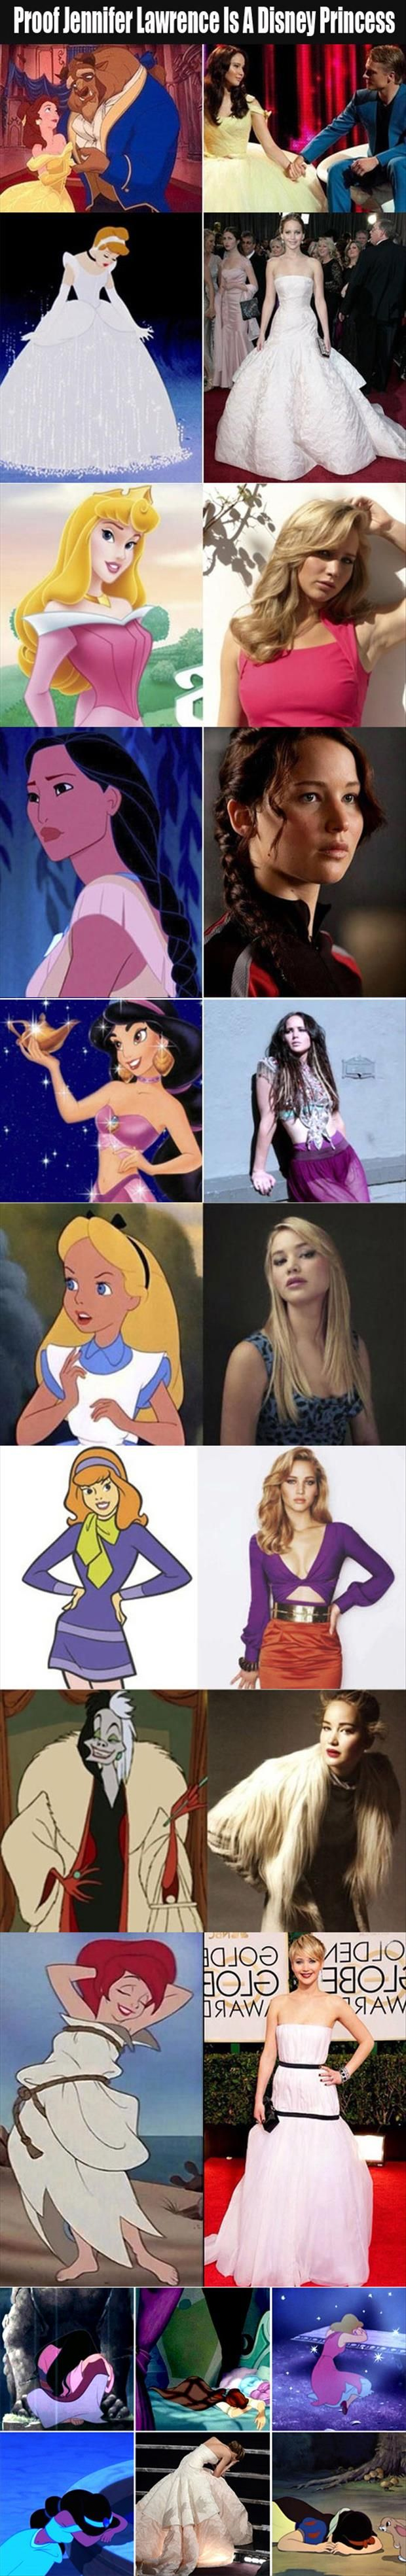 jennifer lawrence is a disney princess